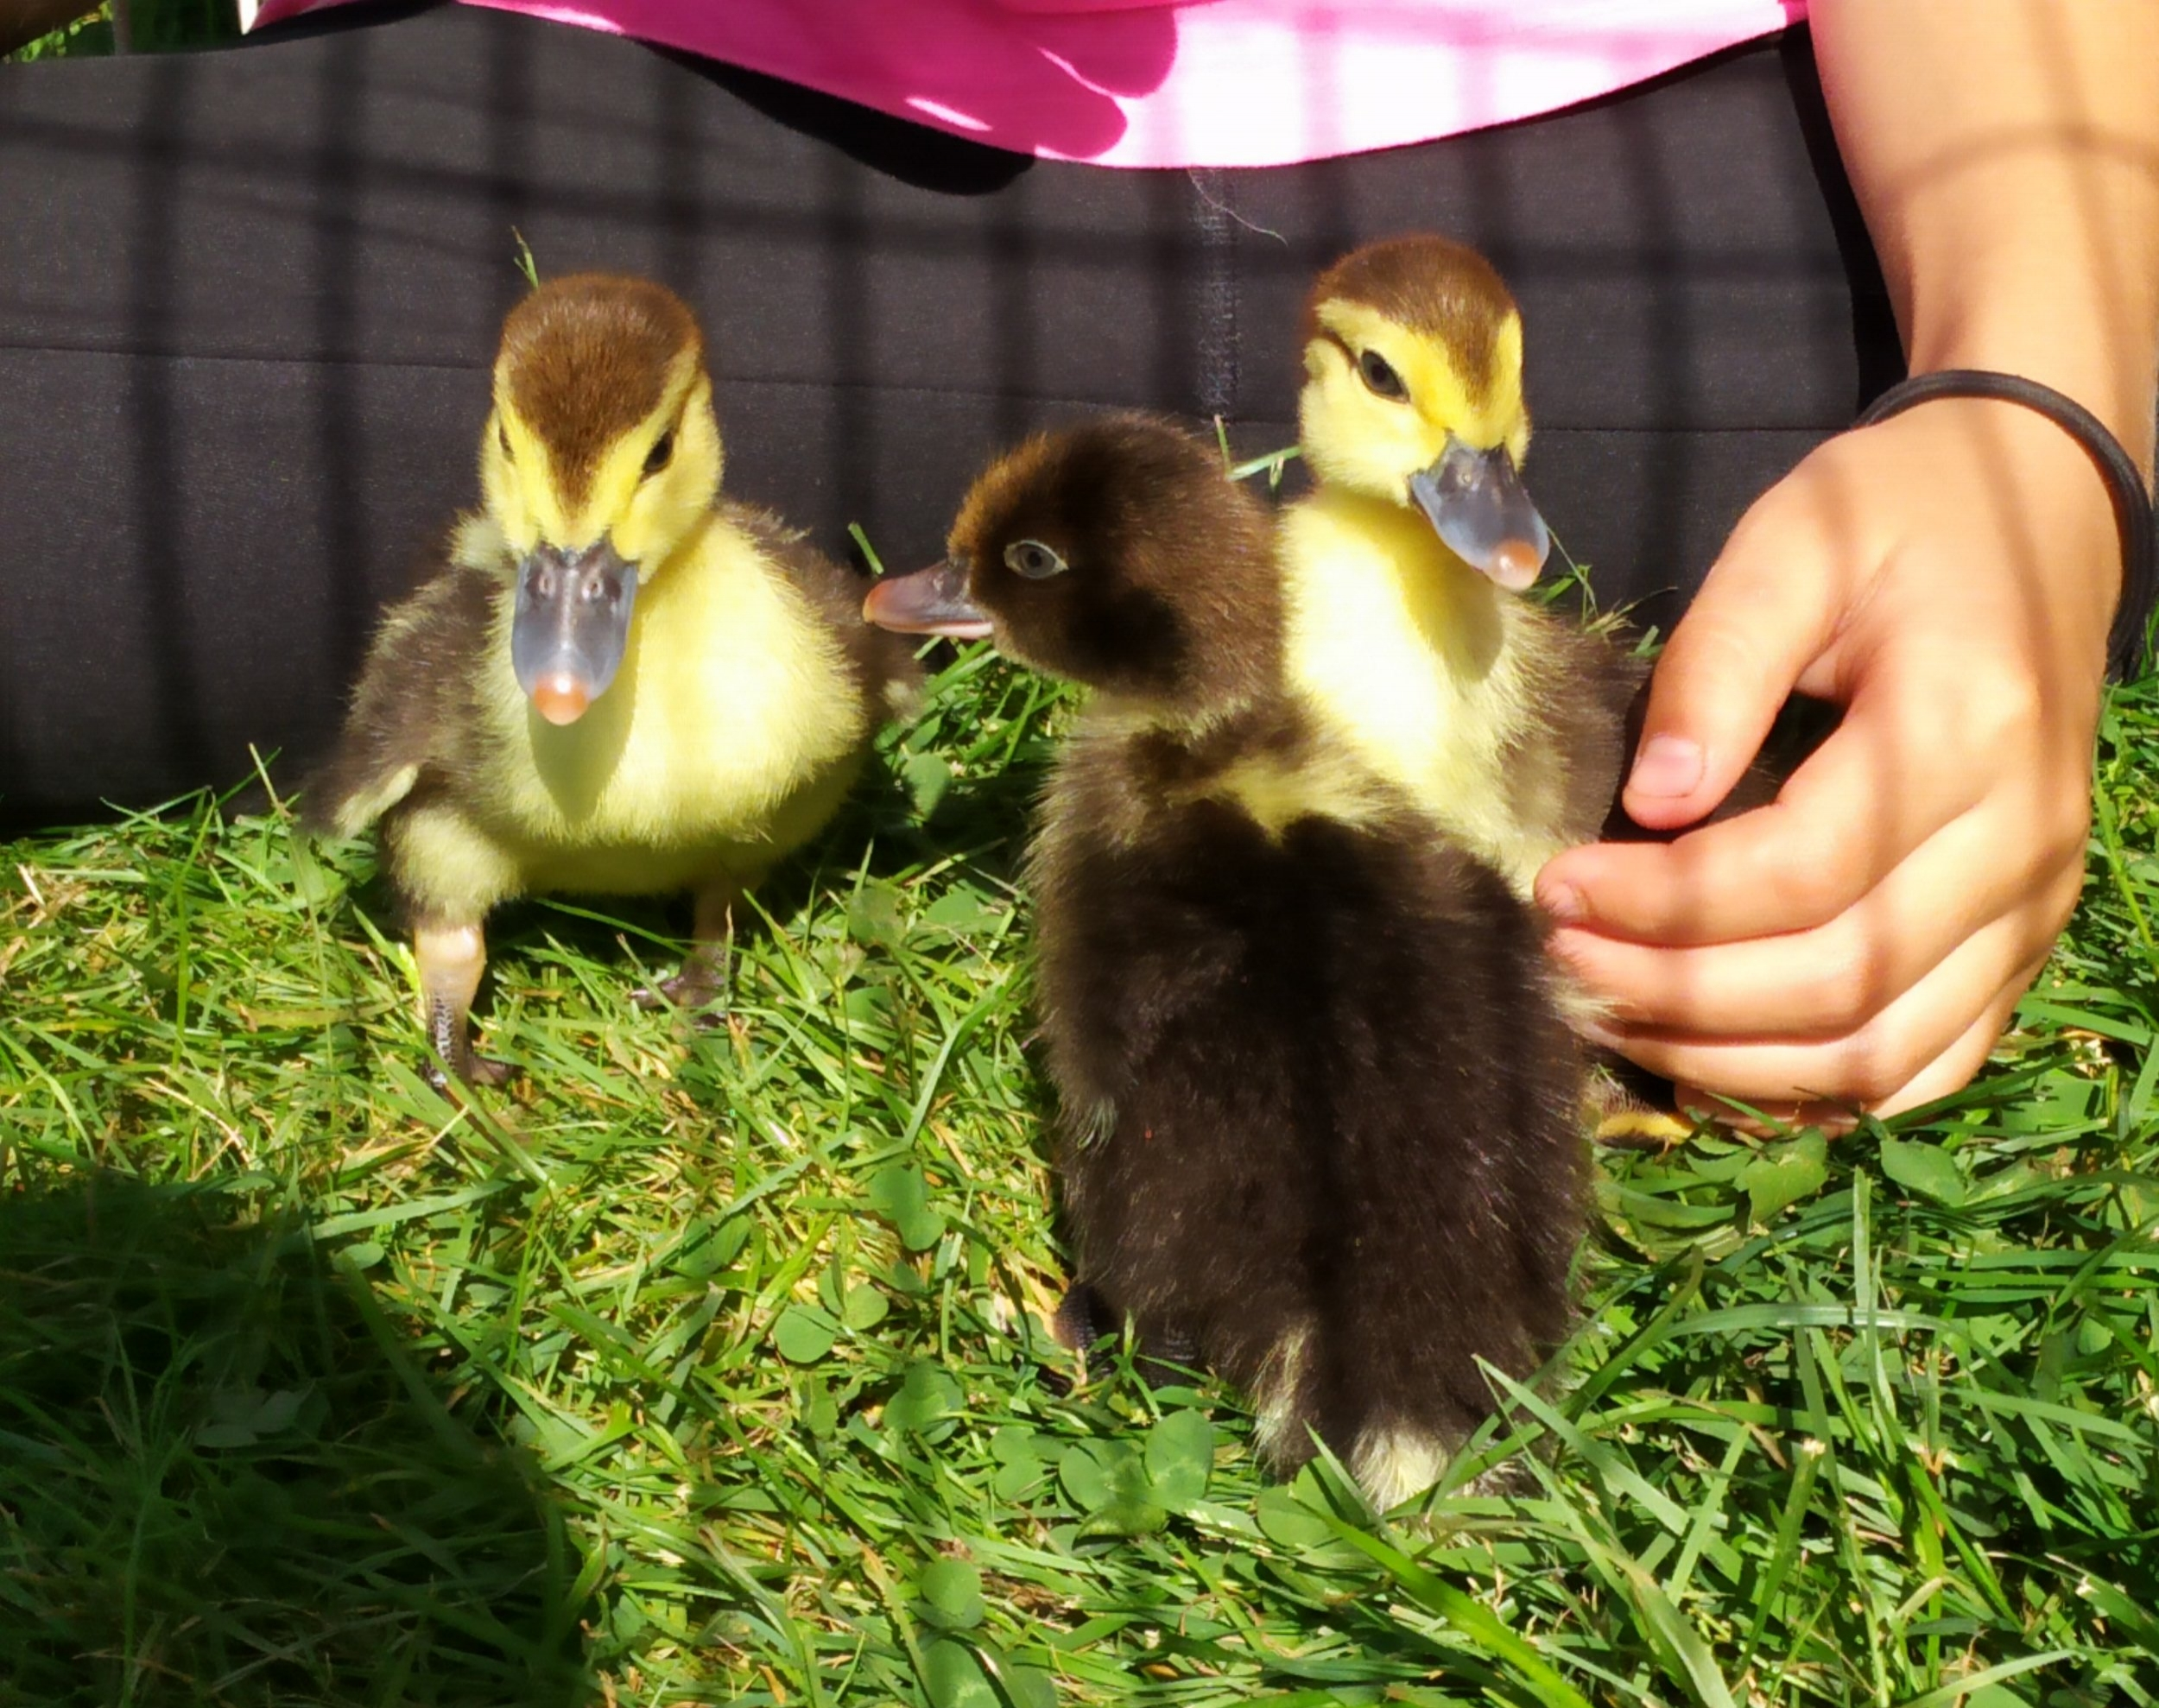 We currently have 7 ducks and 6 chickens - We also incubate and hatch our own eggs every spring and summer!